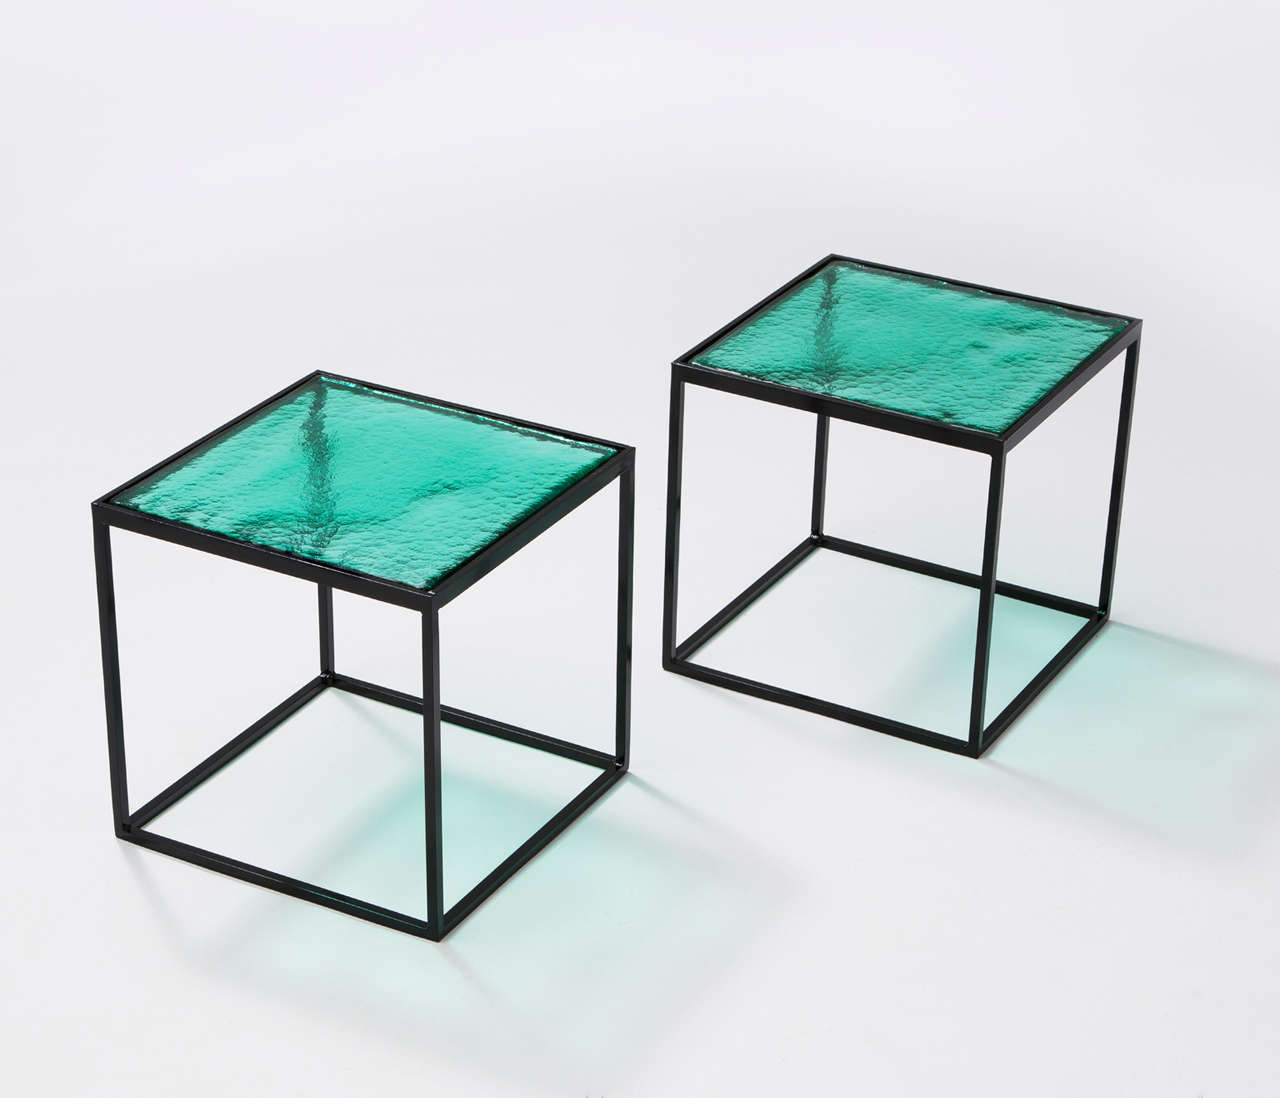 Multiple Green Coloured Glass Side Tables With Metal Box Frame For Sale At 1stdibs